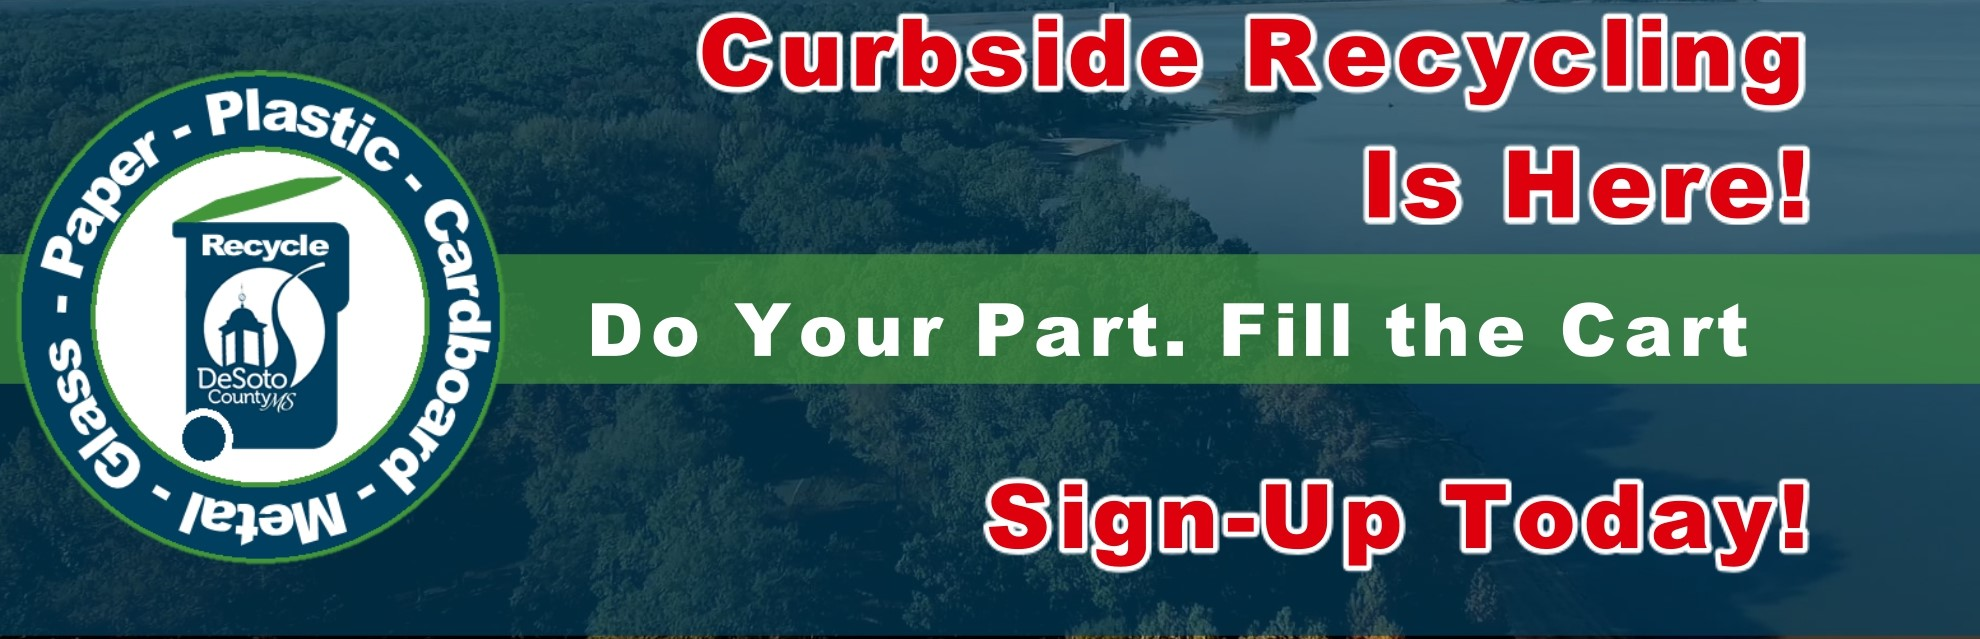 Sign Up For Curbside Recycling Today!